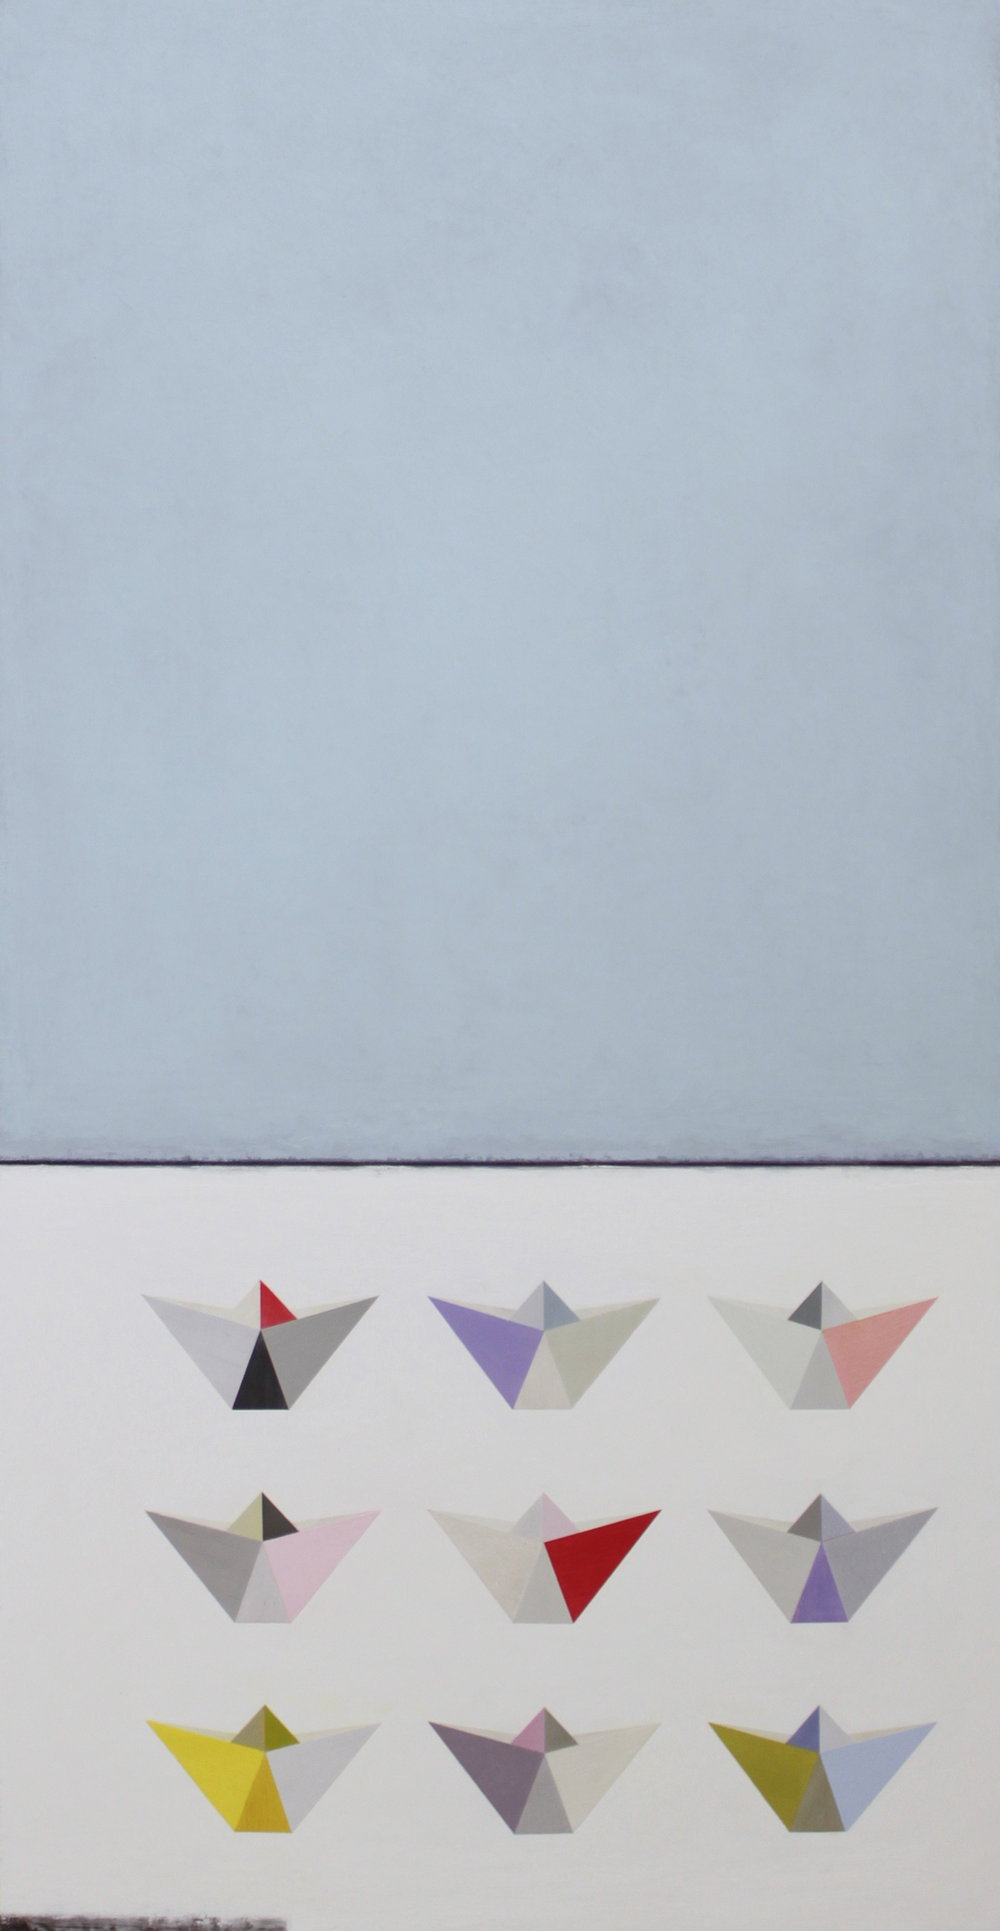 Paul Fry 9 Origami boats 62 x 122 cm oil, gouache & graphite on canvas £3000